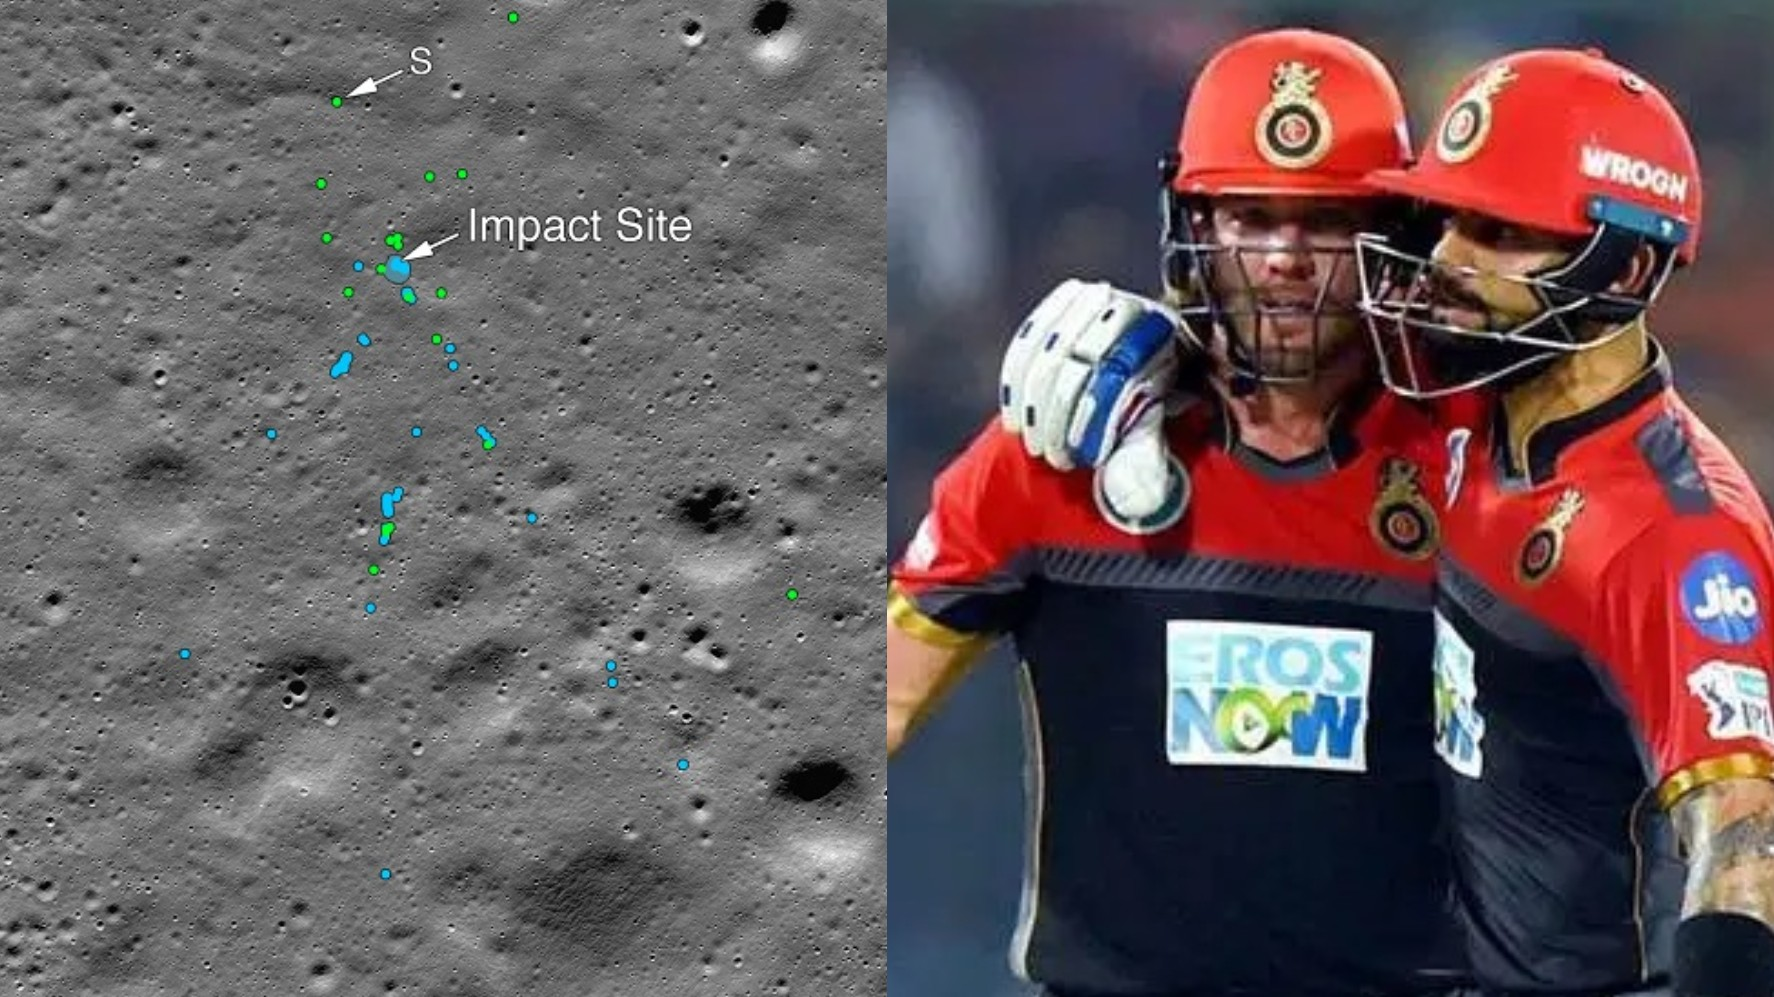 RCB requests NASA to find balls hit by Kohli and De Villiers after congratulating them for locating Vikram Lander